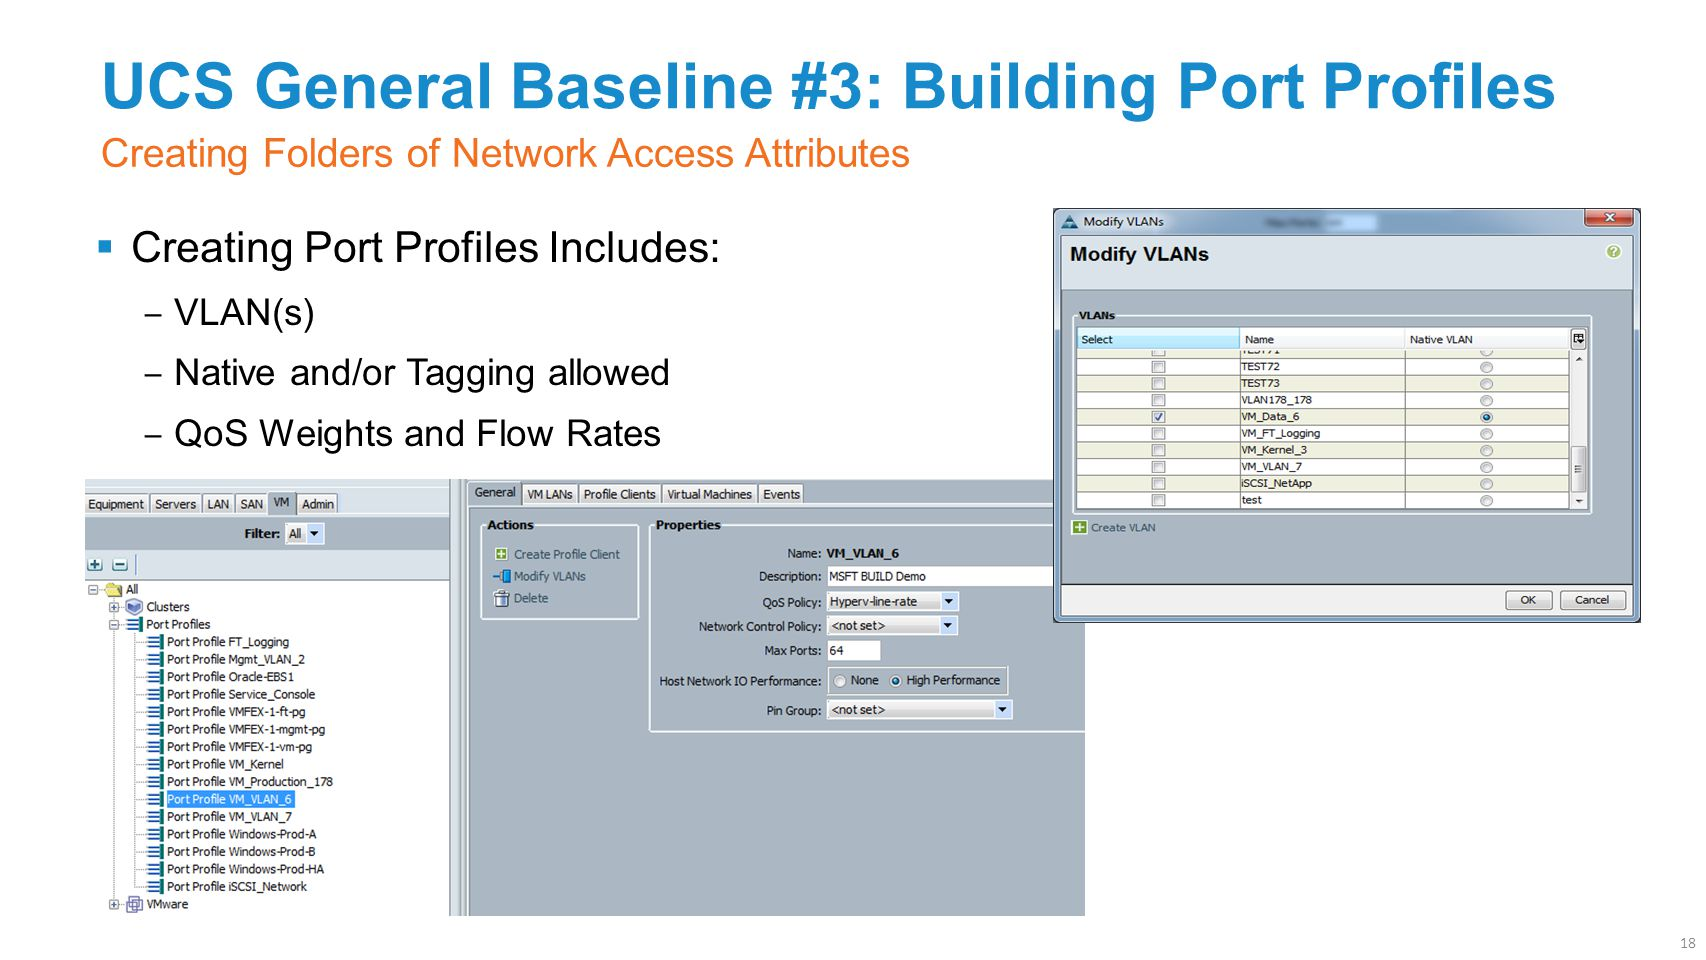 UCS General Baseline #3: Building Port Profiles  Creating Port Profiles Includes: ‒ VLAN(s) ‒ Native and/or Tagging allowed ‒ QoS Weights and Flow Ra